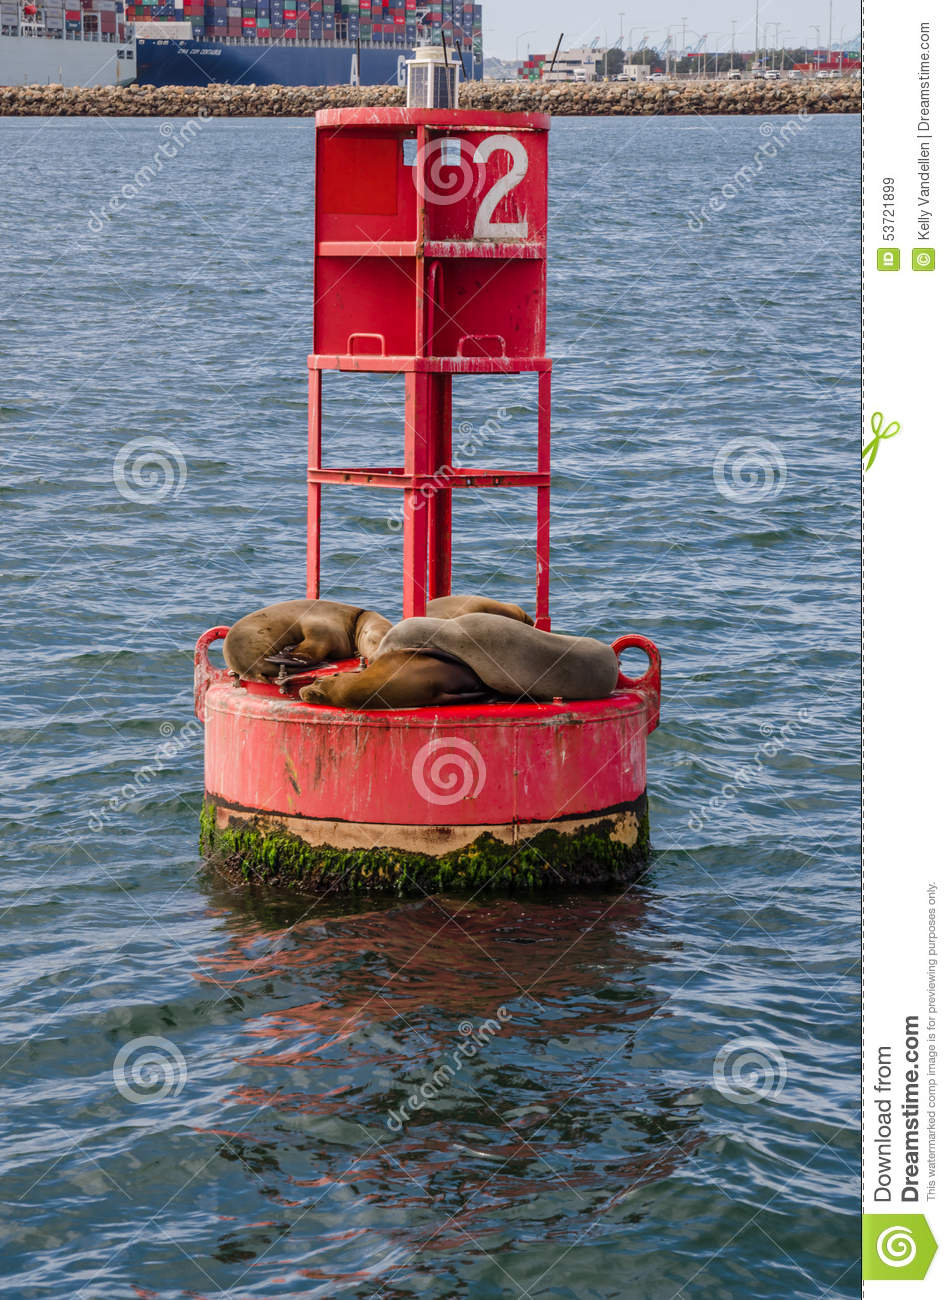 Sea Lions Cuddle on a Red Buoy in Long Beach Habor Vertical